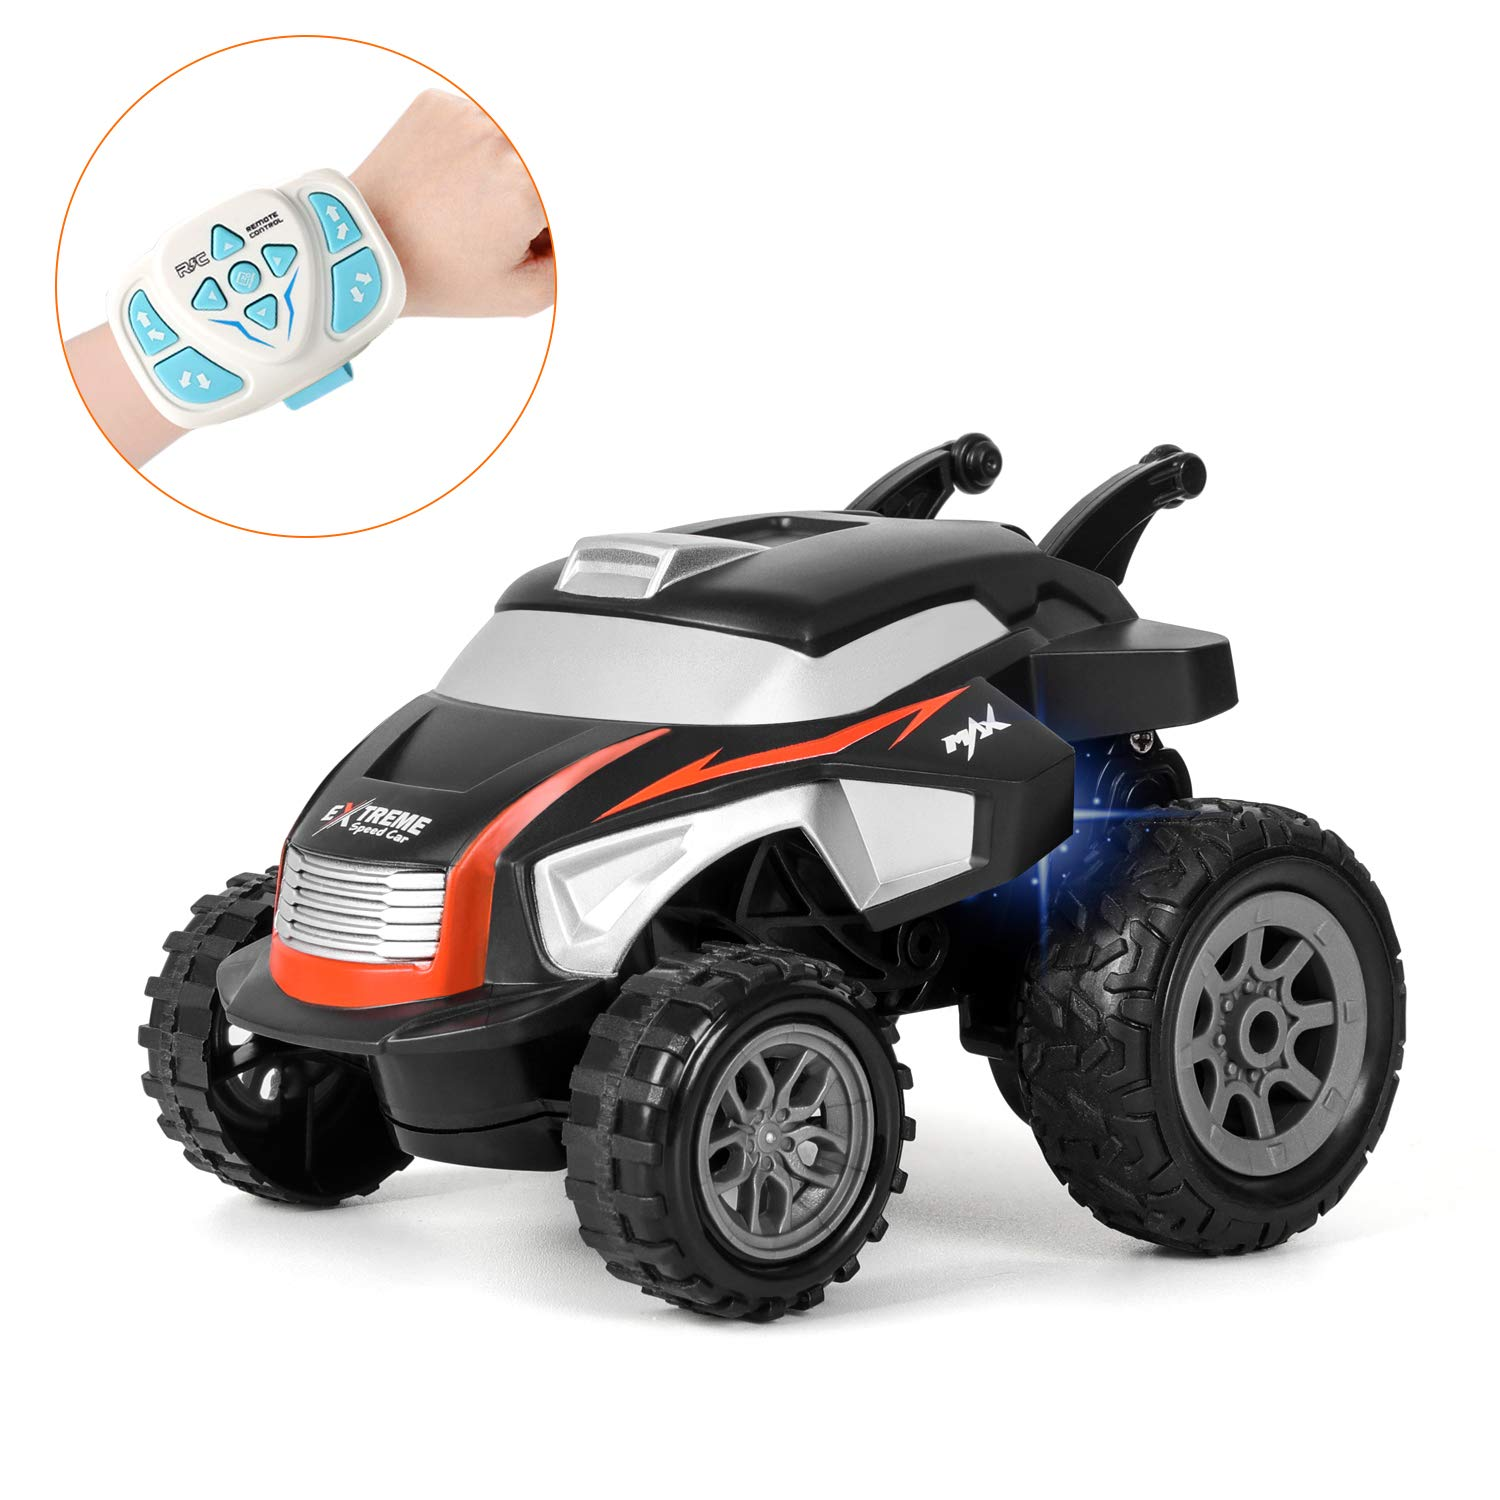 RC Cars, Wrist Watch Remote Control Car Toy, 2.4Ghz RC Off Road Cars 360 Degree Rotating Vehicles, Small Stunt RC Cars, Kids Toy Cars for Boys & Girls Birthday Gift